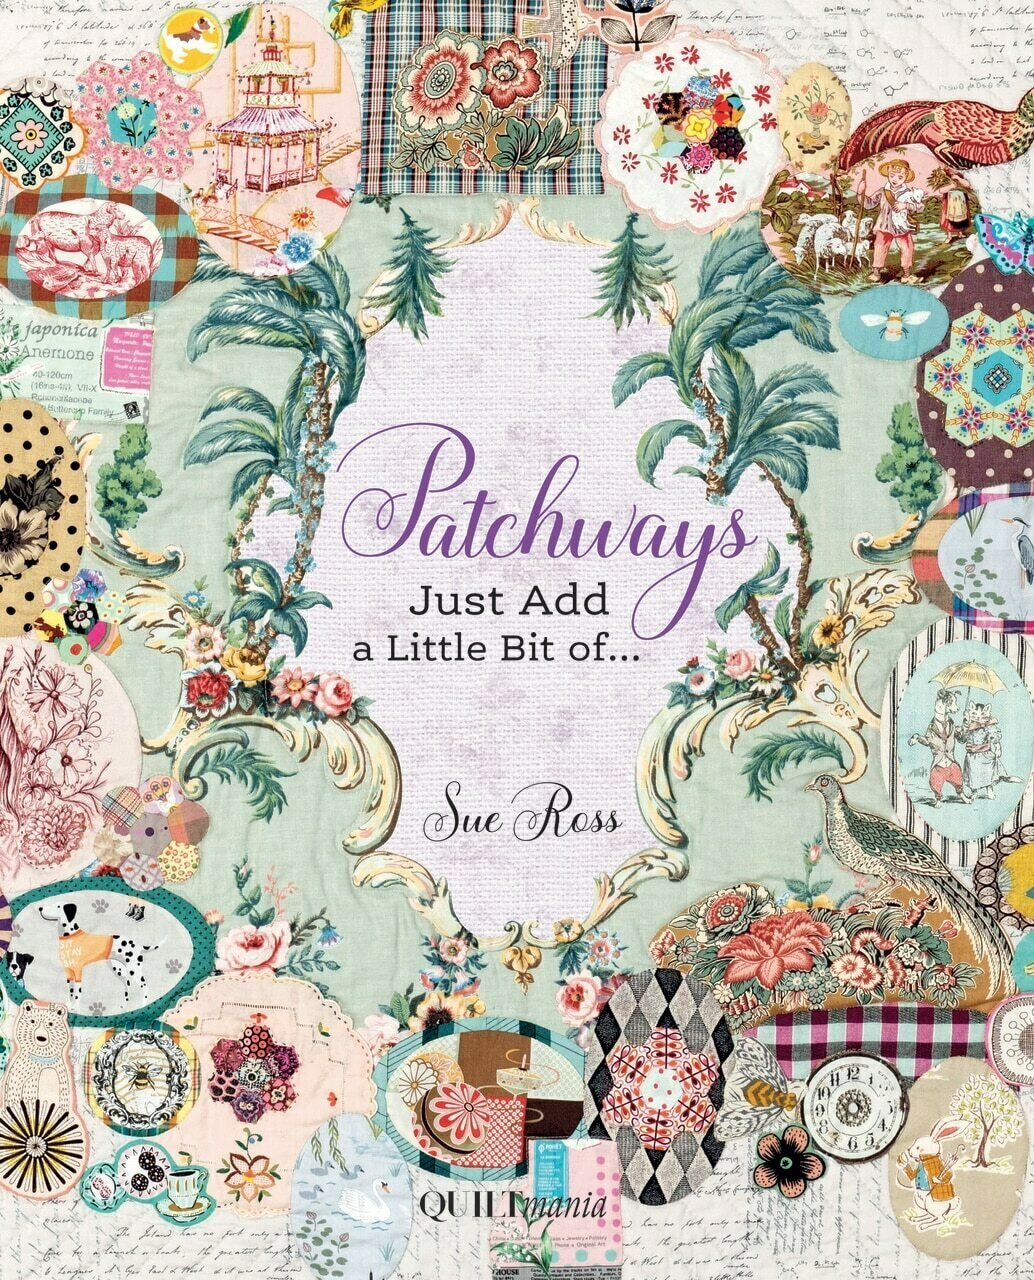 Sue Ross : Patchways - Just add a Little Bit of...